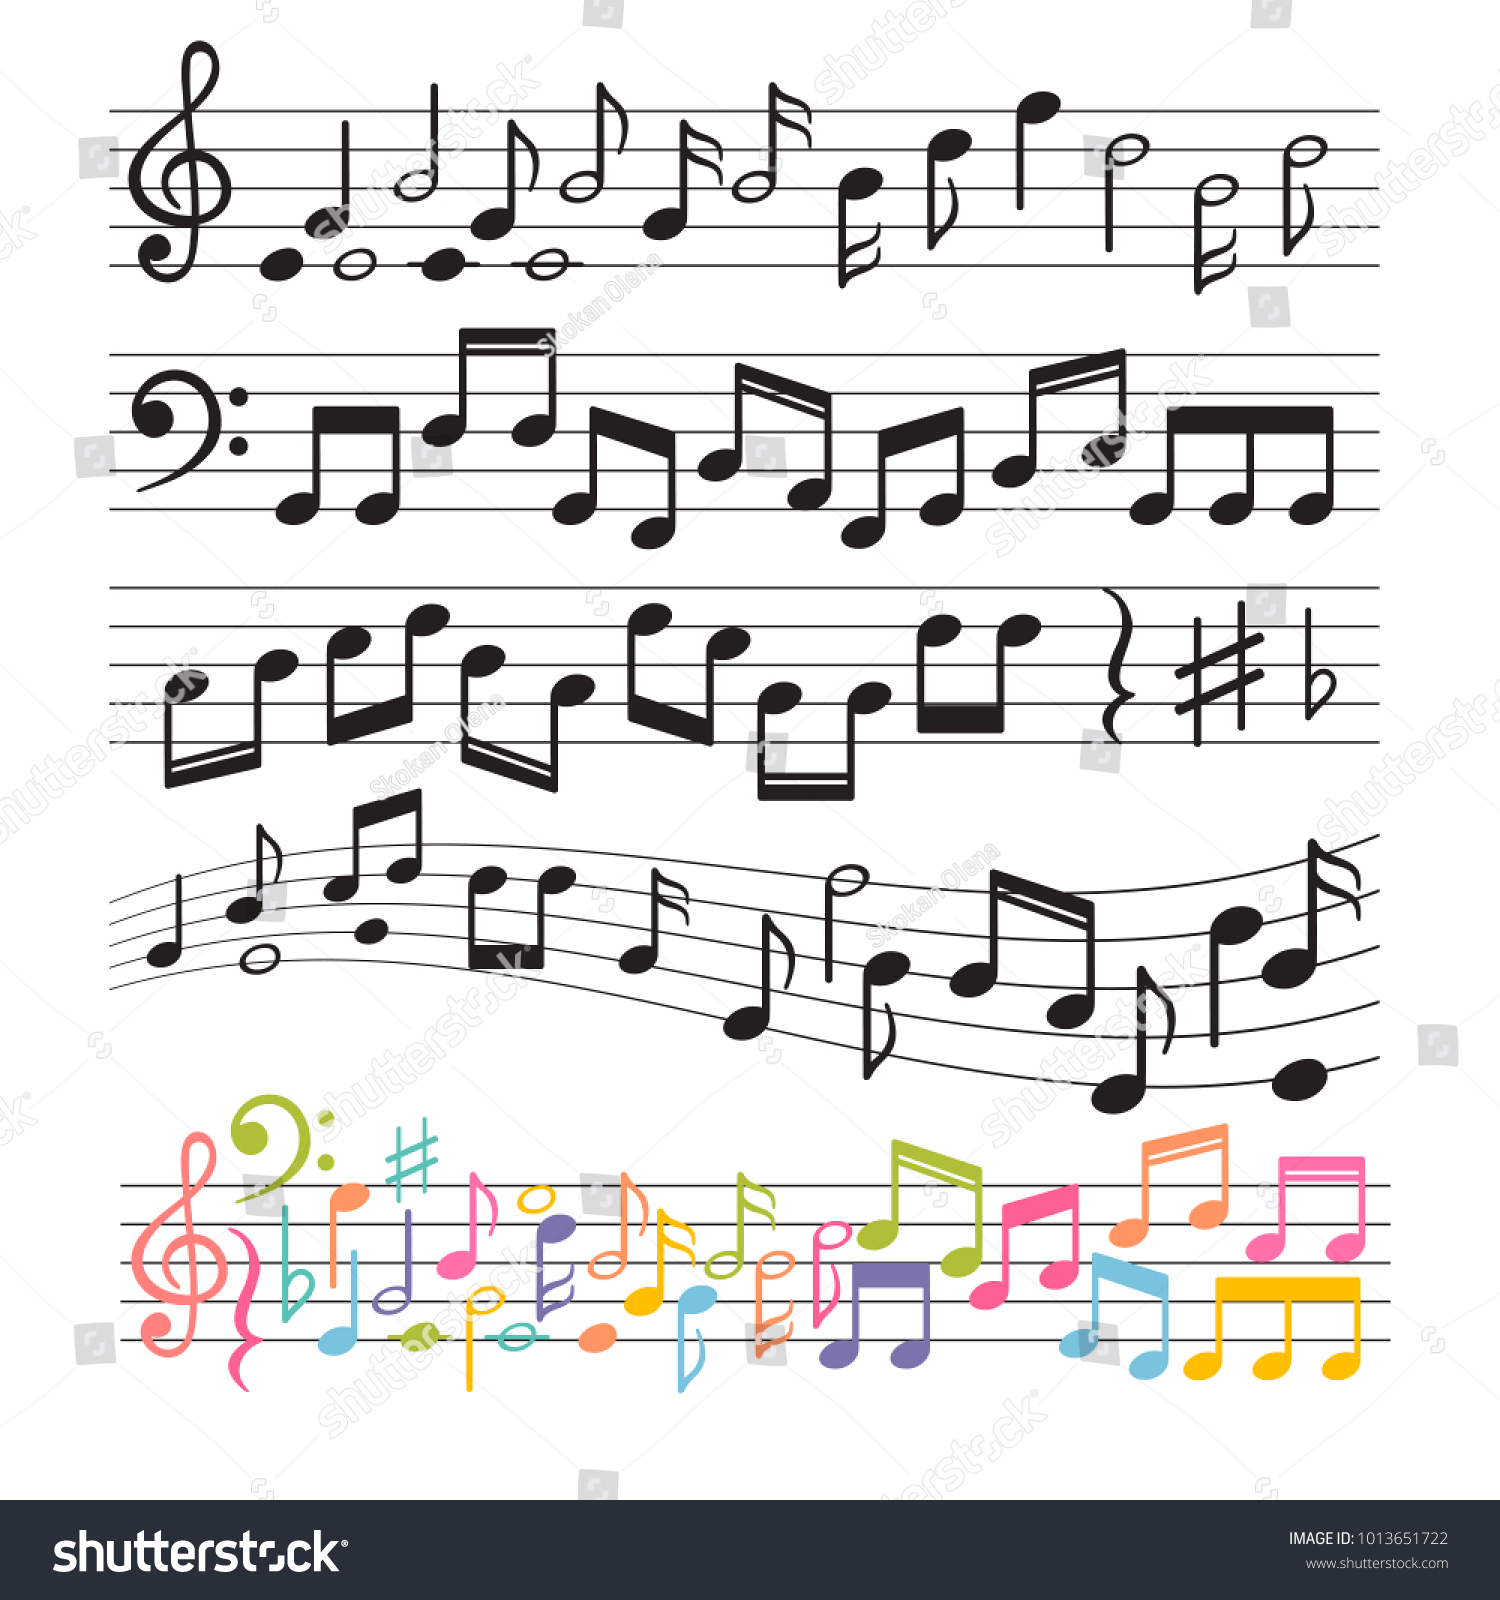 Set Of Hand Drawn Music Notes Music Design Elements Key Sign